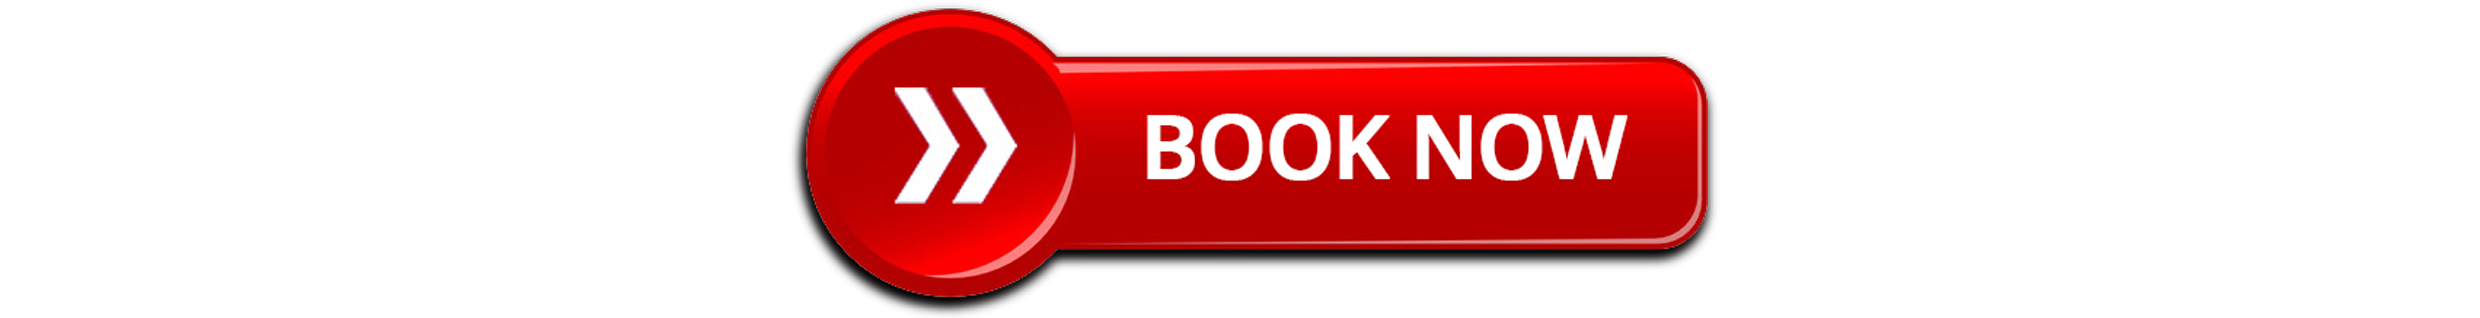 Book now for newsletter.png